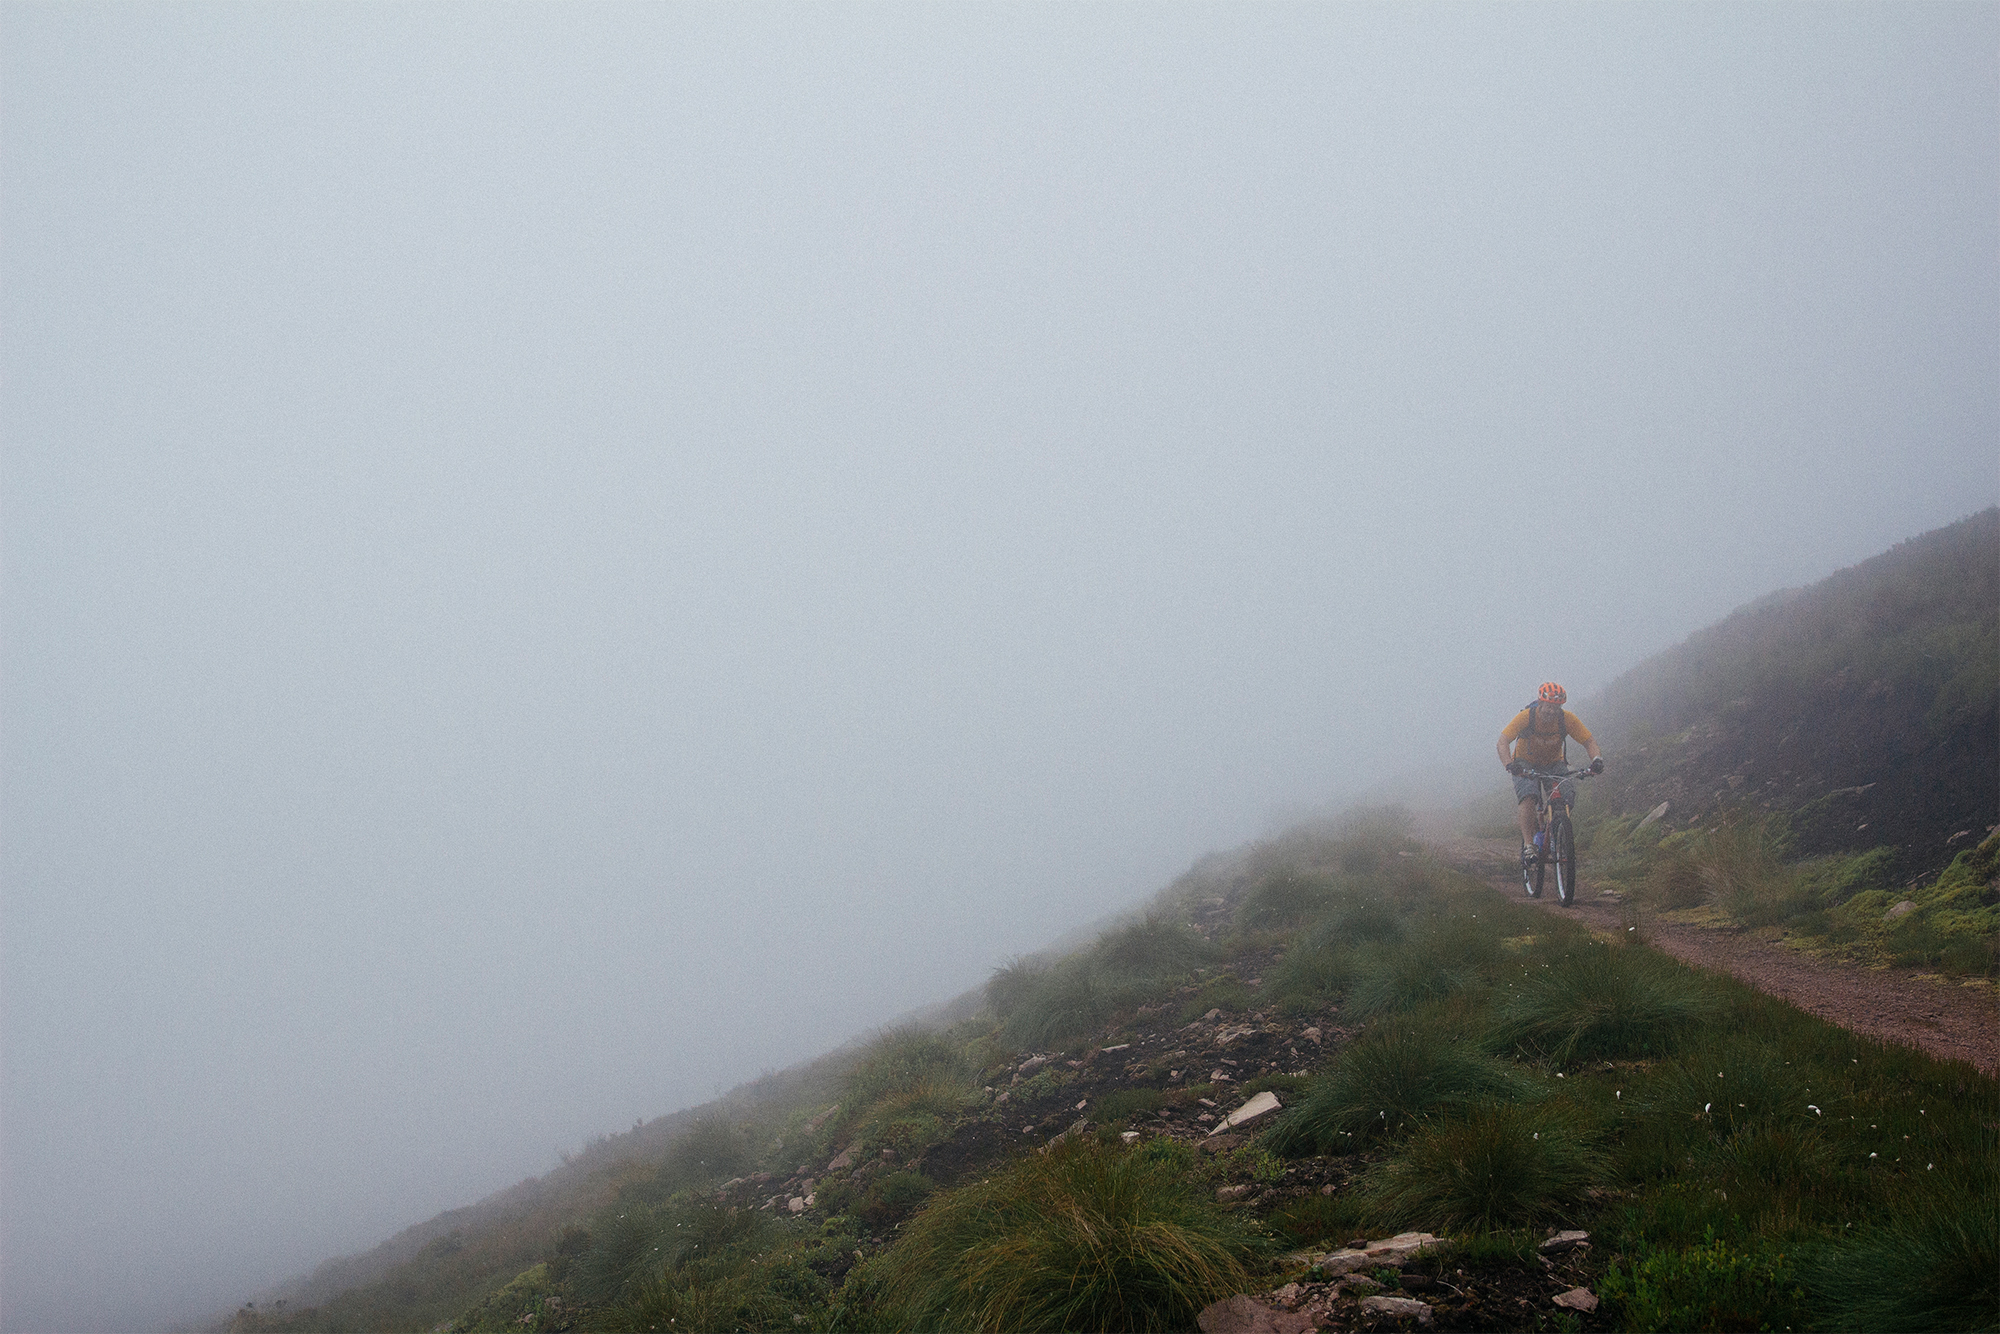 A mountain biker appears through the fog, high up on the edge of a hillside.